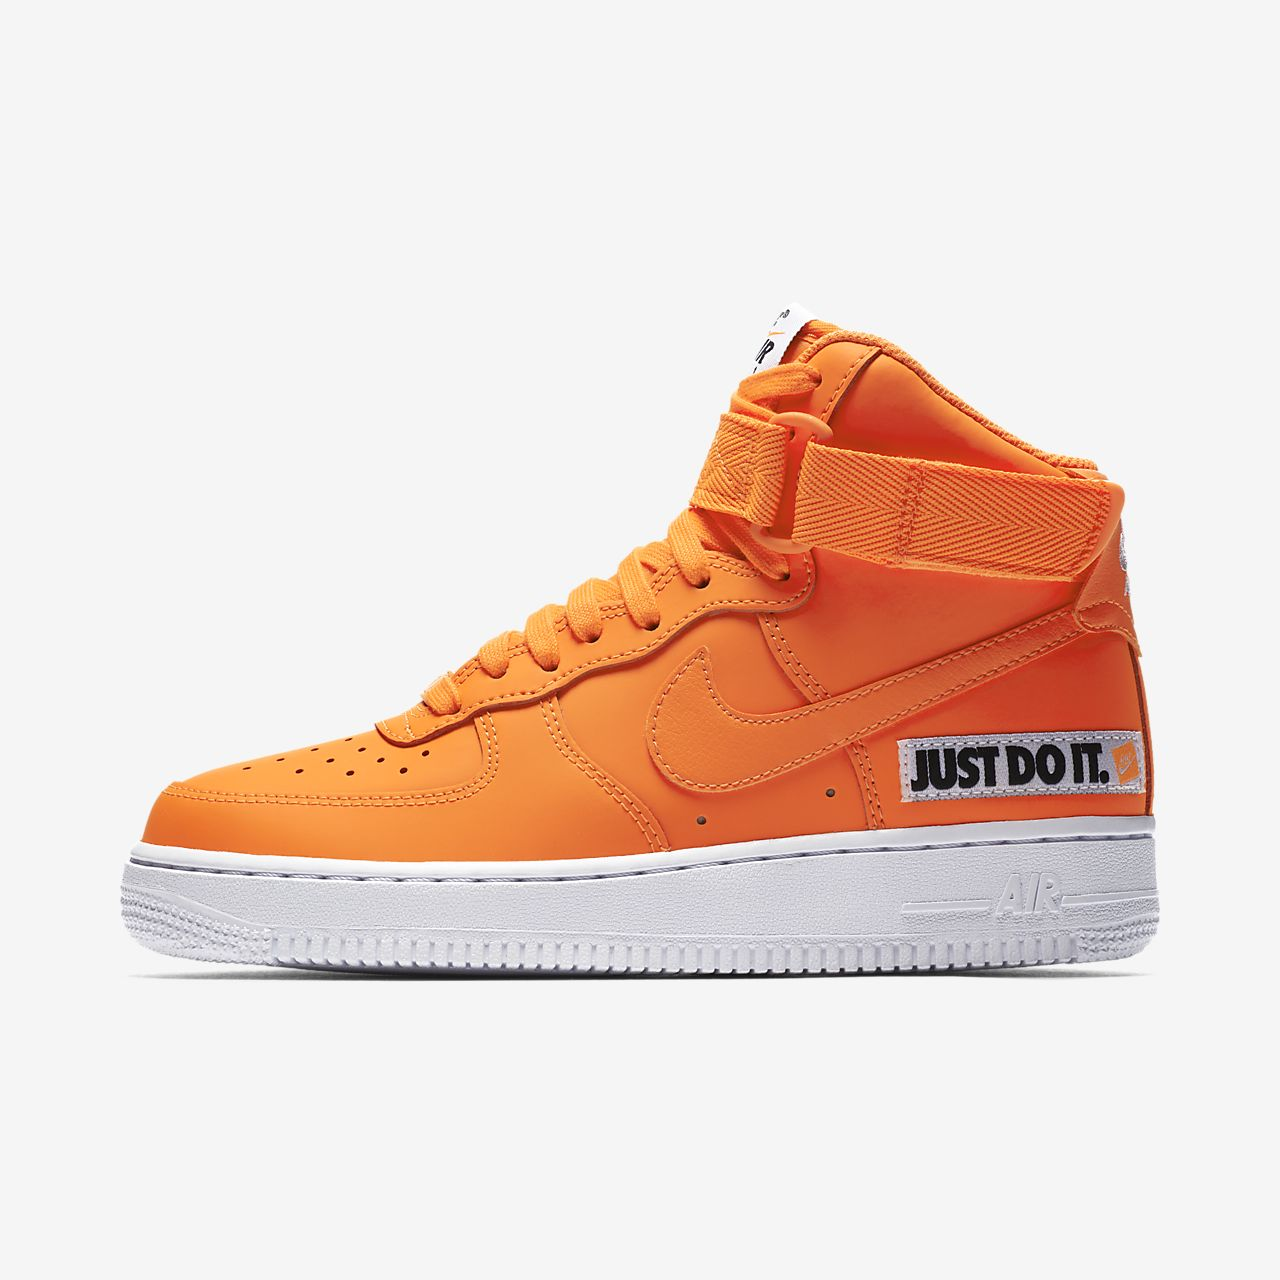 wholesale dealer 94747 df4a6 ... promo code chaussure nike air force 1 high lx leather pour femme 07966  58b43 ...